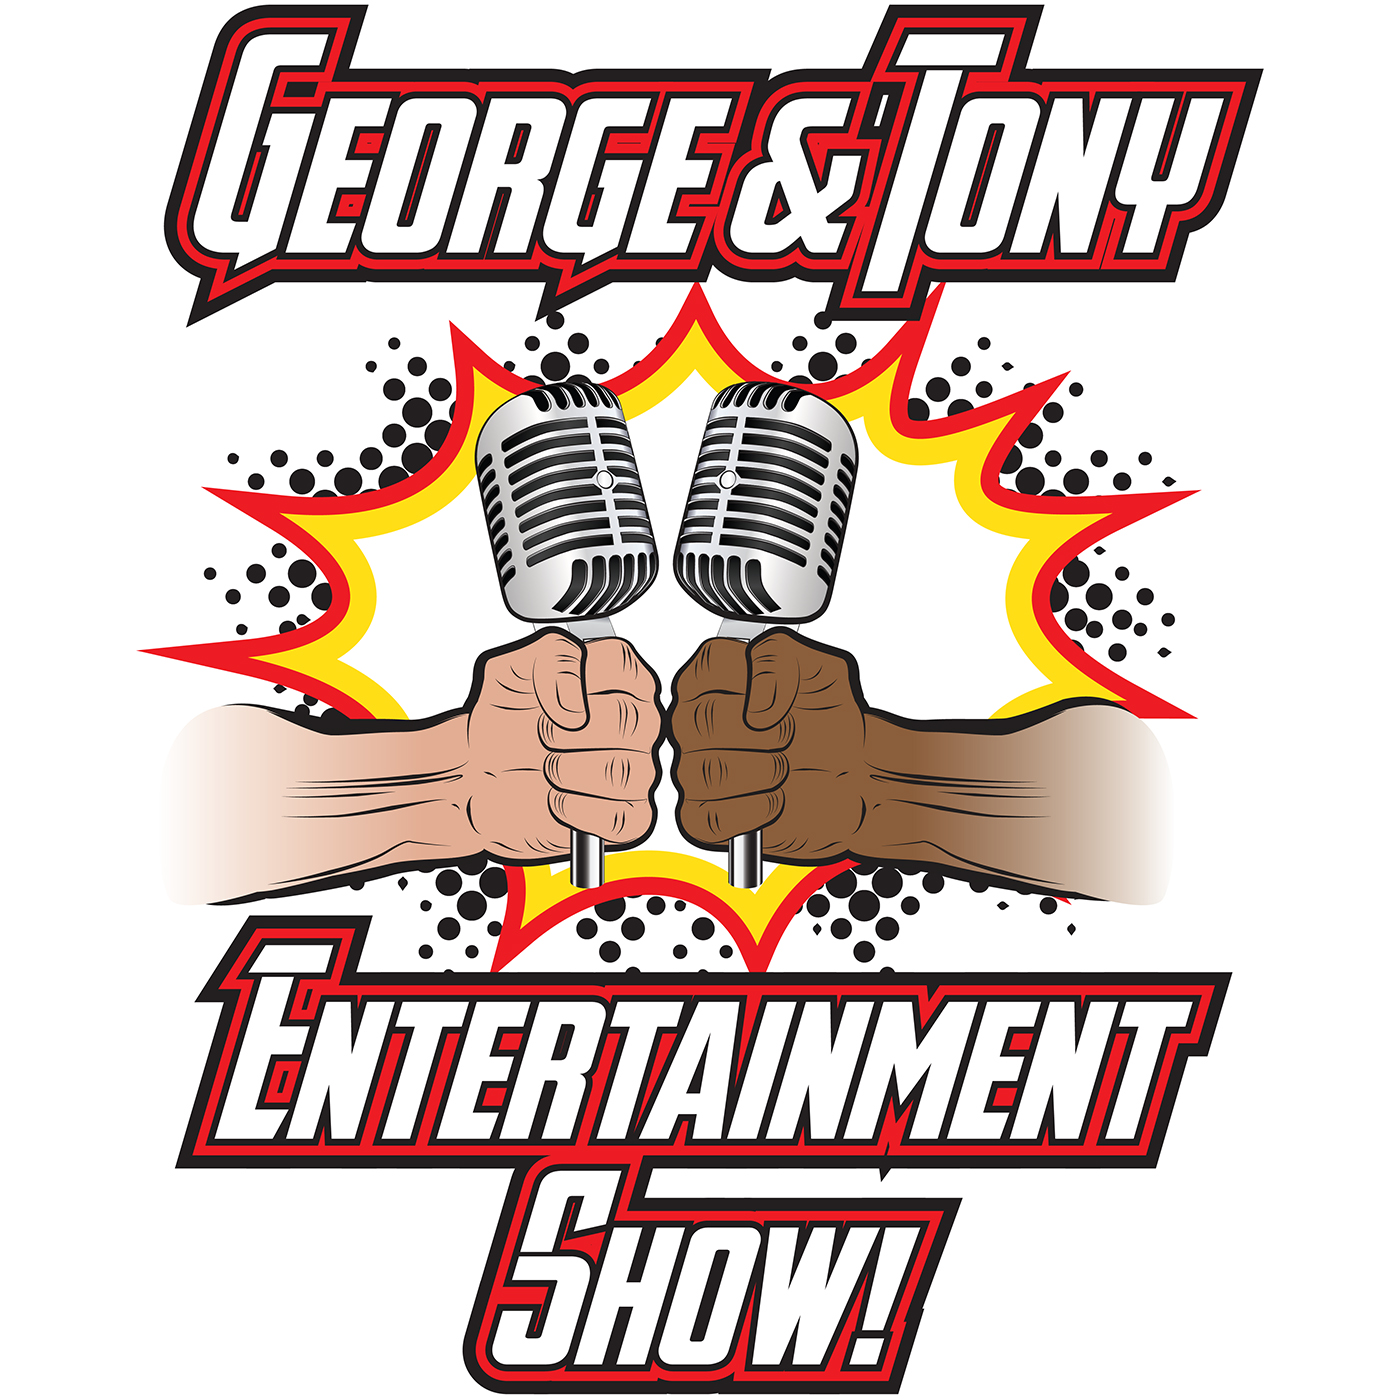 George and Tony Entertainment Show #12